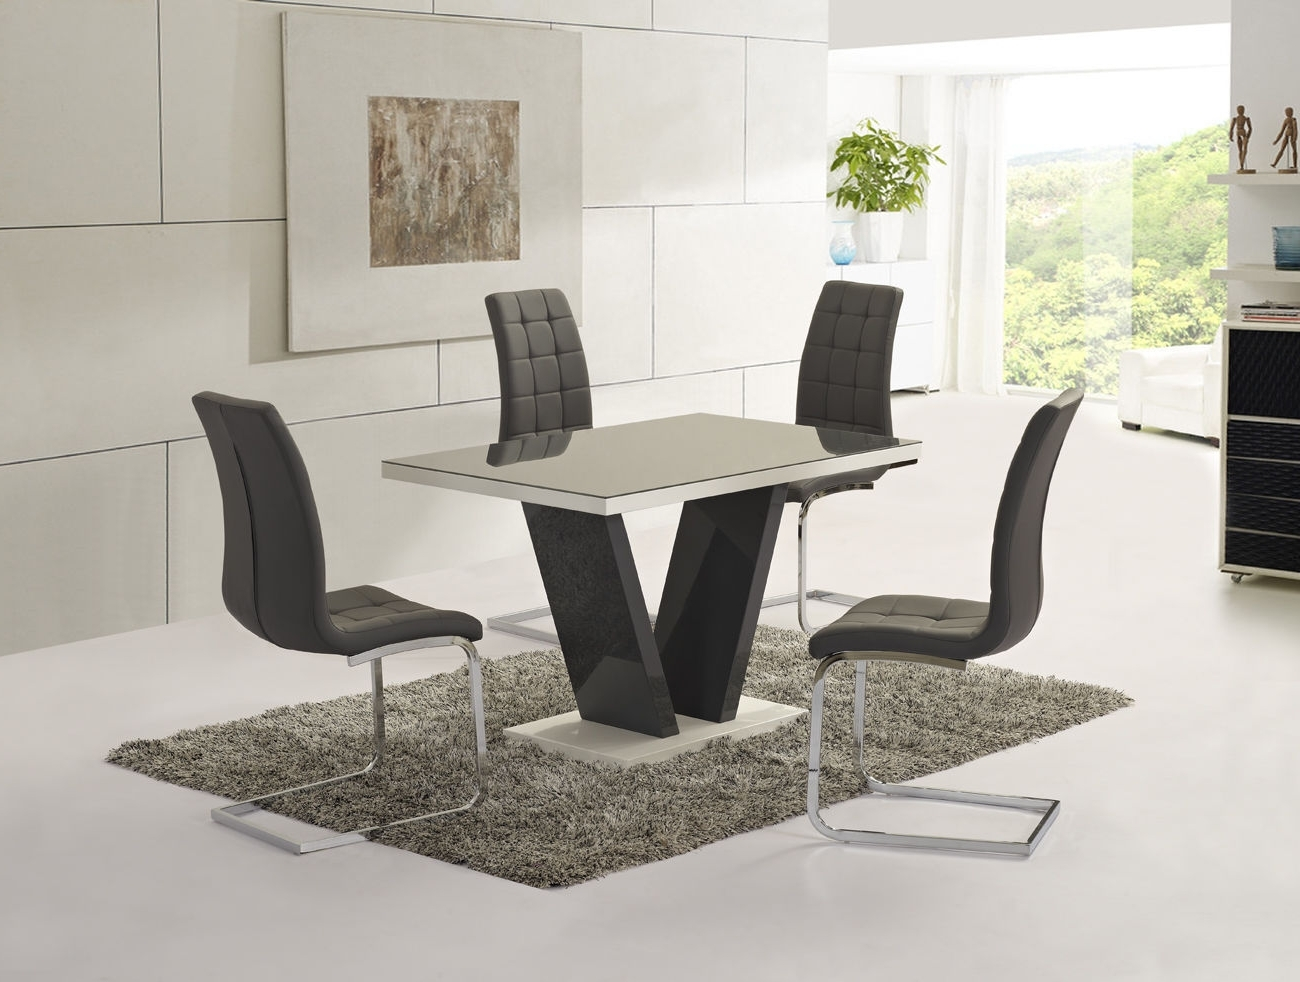 Most Recently Released Black Glass Dining Tables And 6 Chairs With Regard To Ga Vico Gloss Grey Glass Top Designer 160Cm Dining Set – 4/6 Grey / White  Chairs (Gallery 11 of 25)